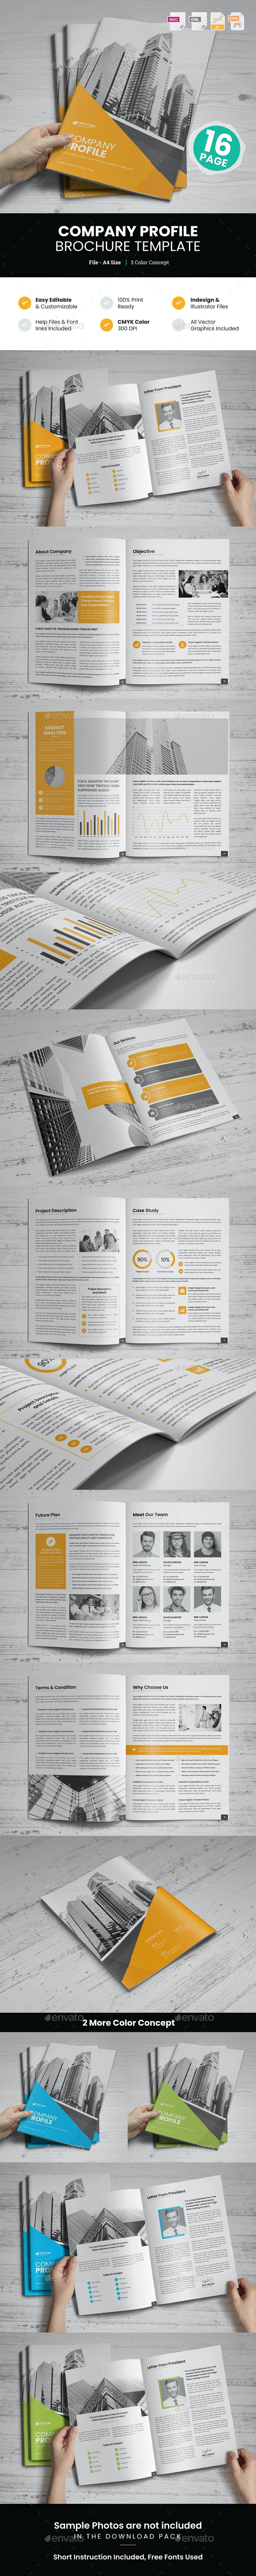 Company Profile Brochure Design v10 - Corporate Brochures